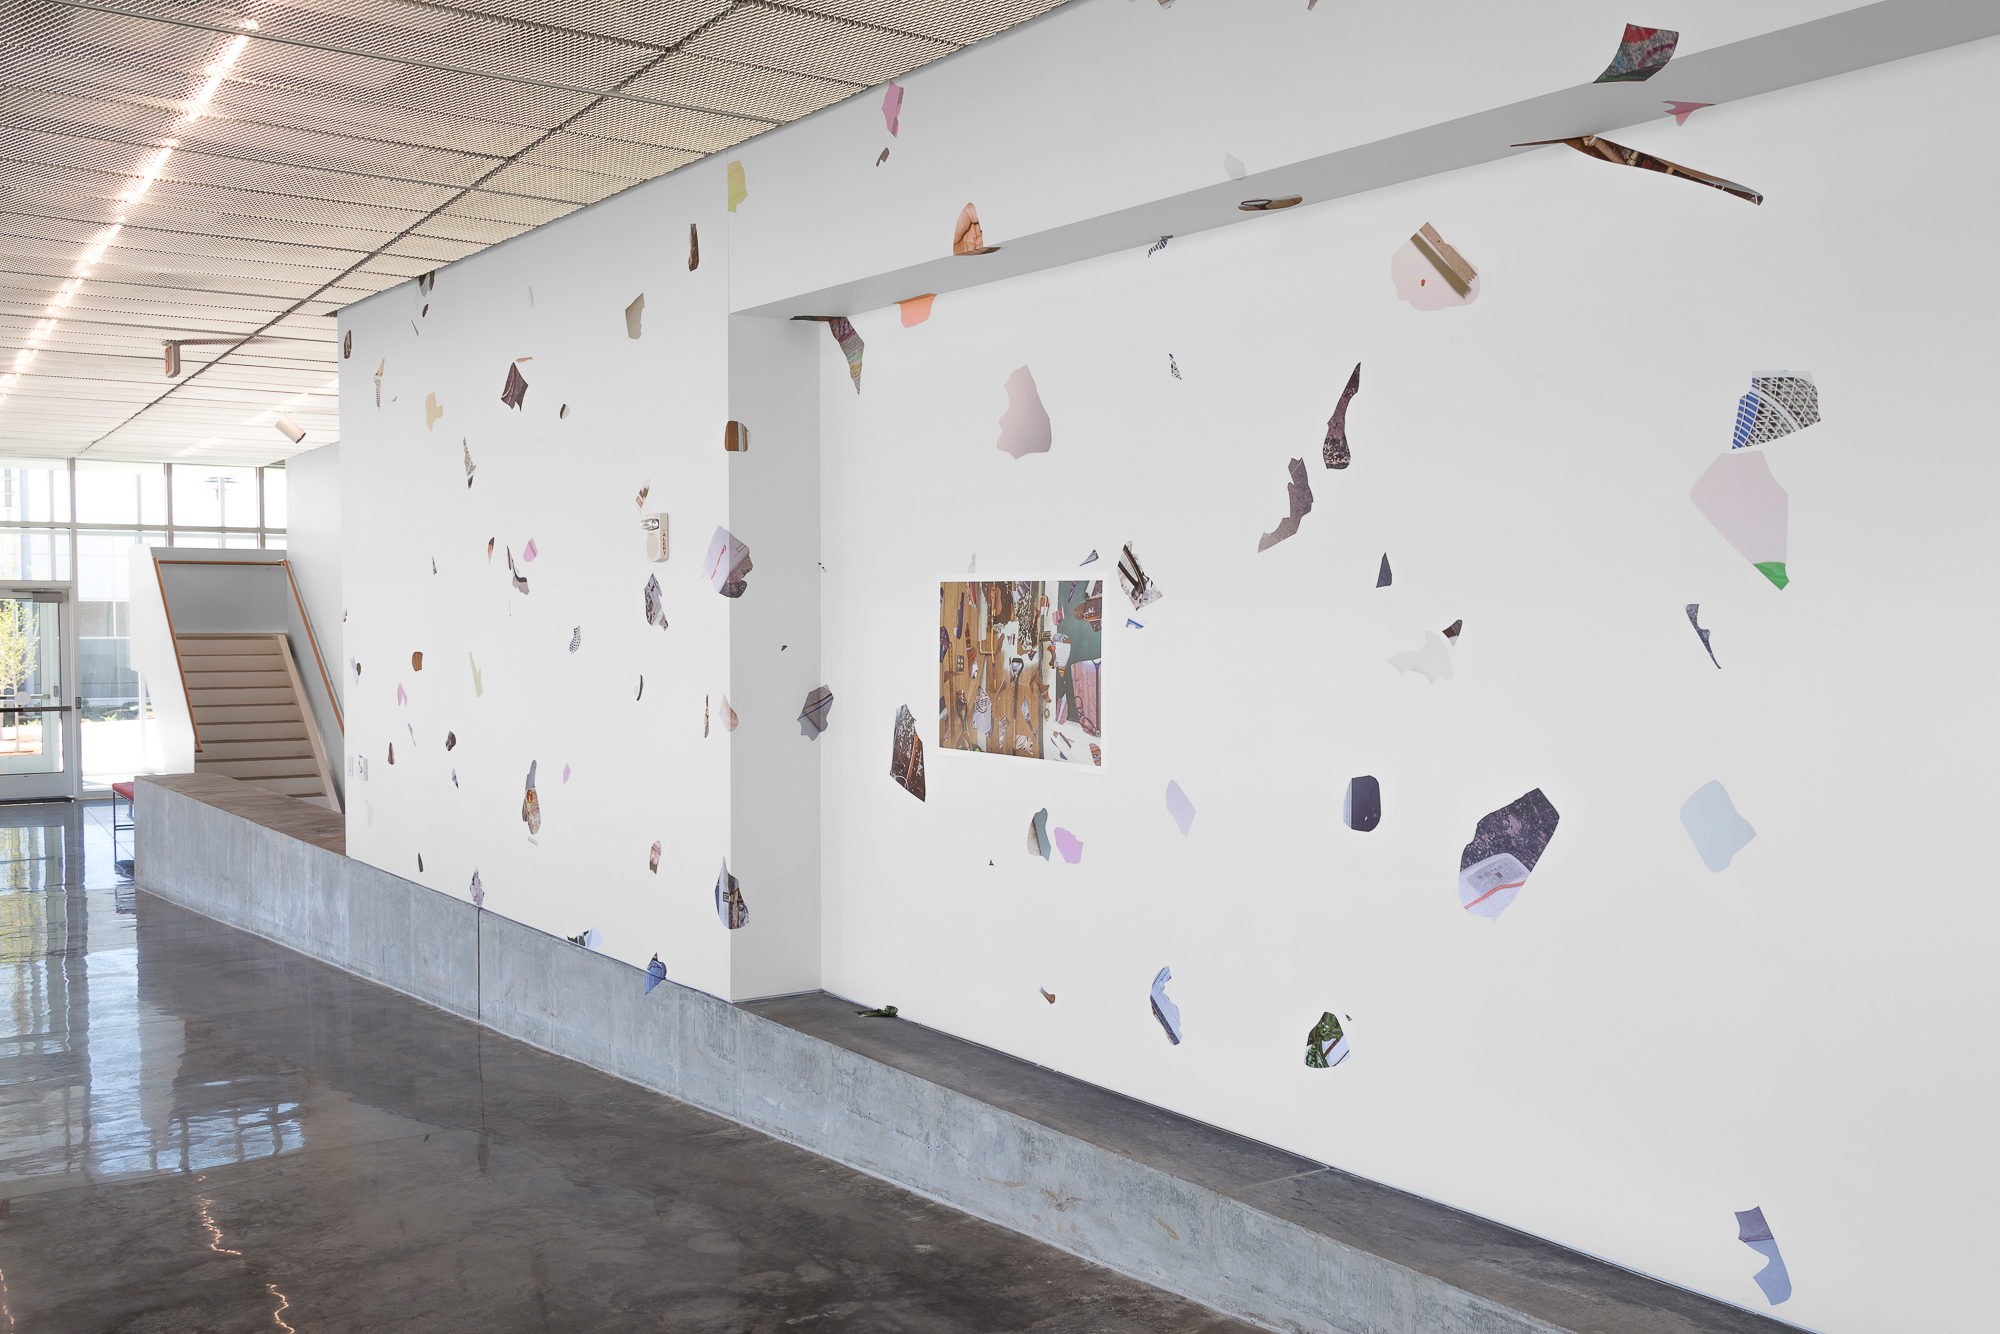 CONTENT , Johnson County Community College Fine Arts Building (Overland Park, KS), 2019, installation view